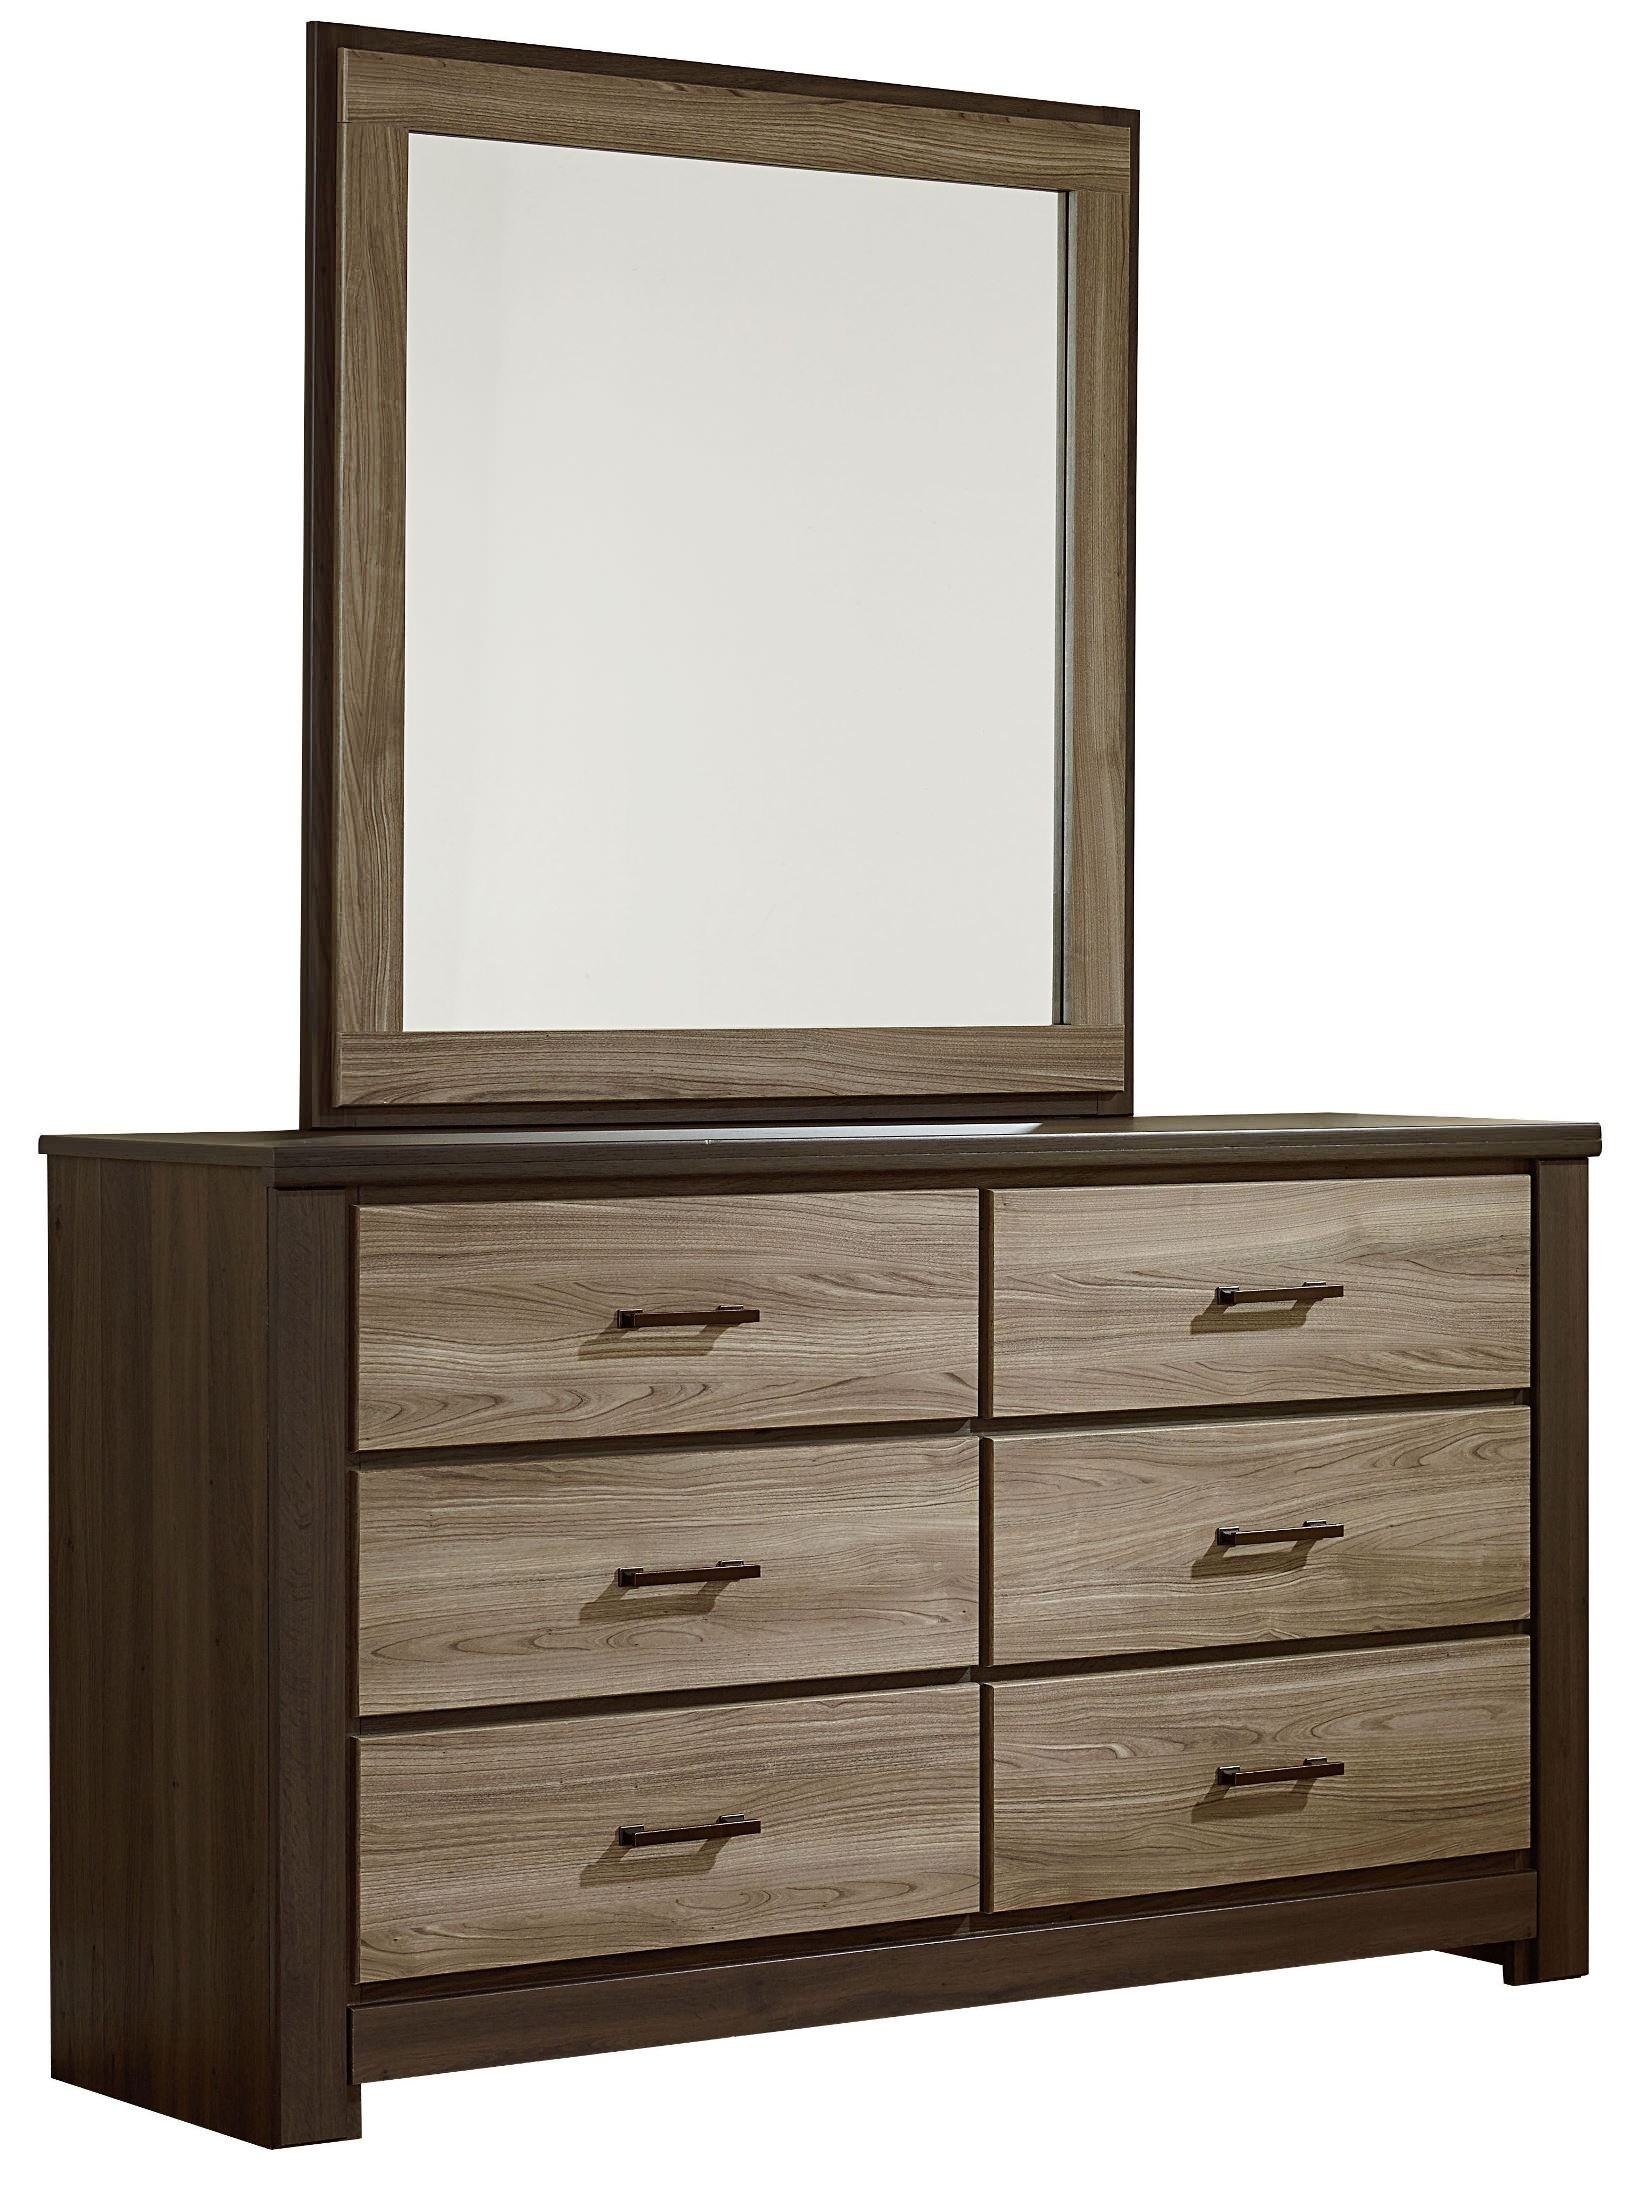 Kolding 2 Drawer Dressing Table Smoky Oak Effect